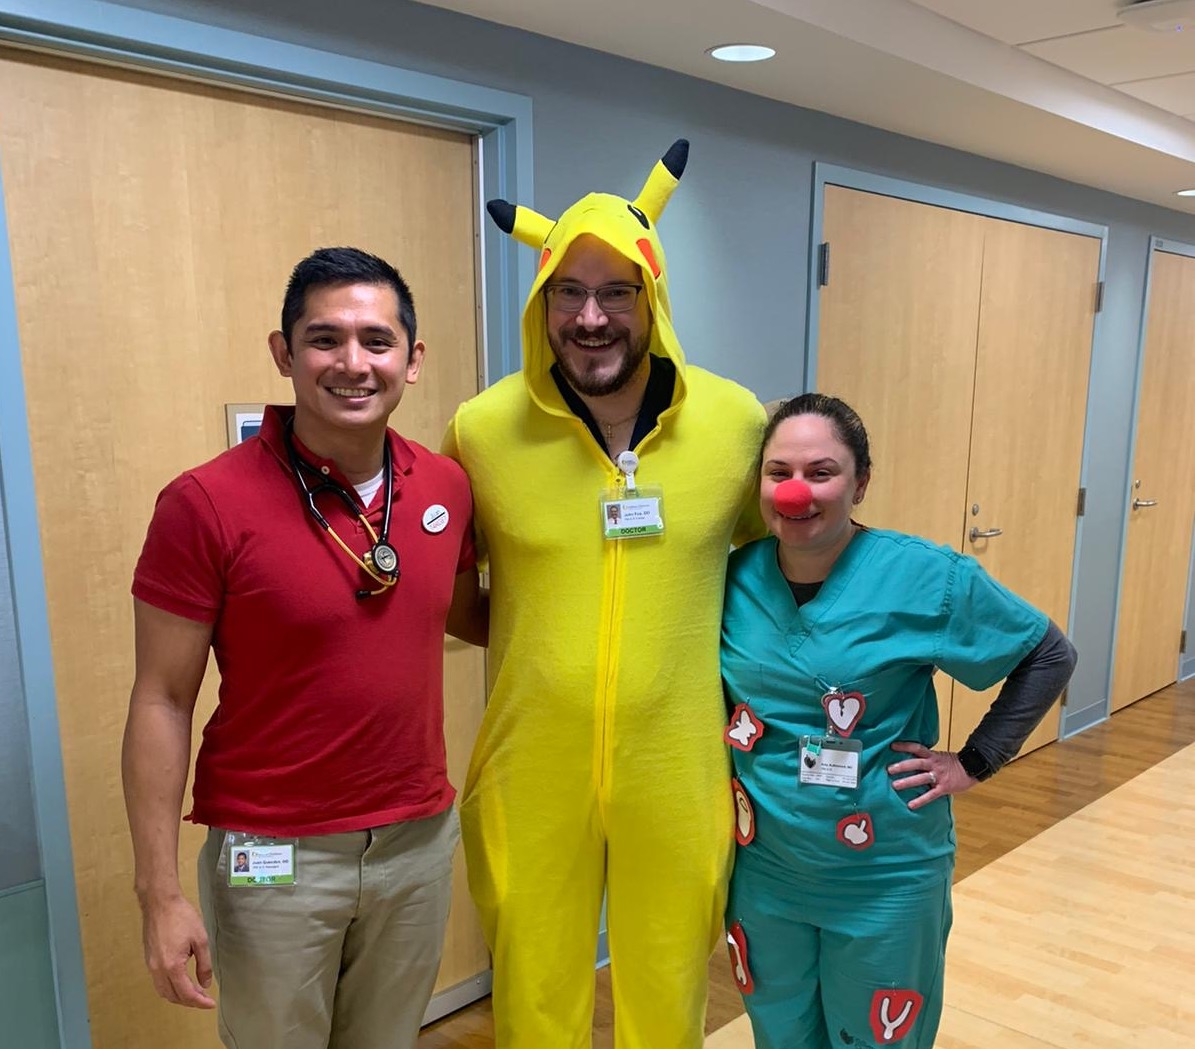 PMR residents and fellows dressed up in costumes.